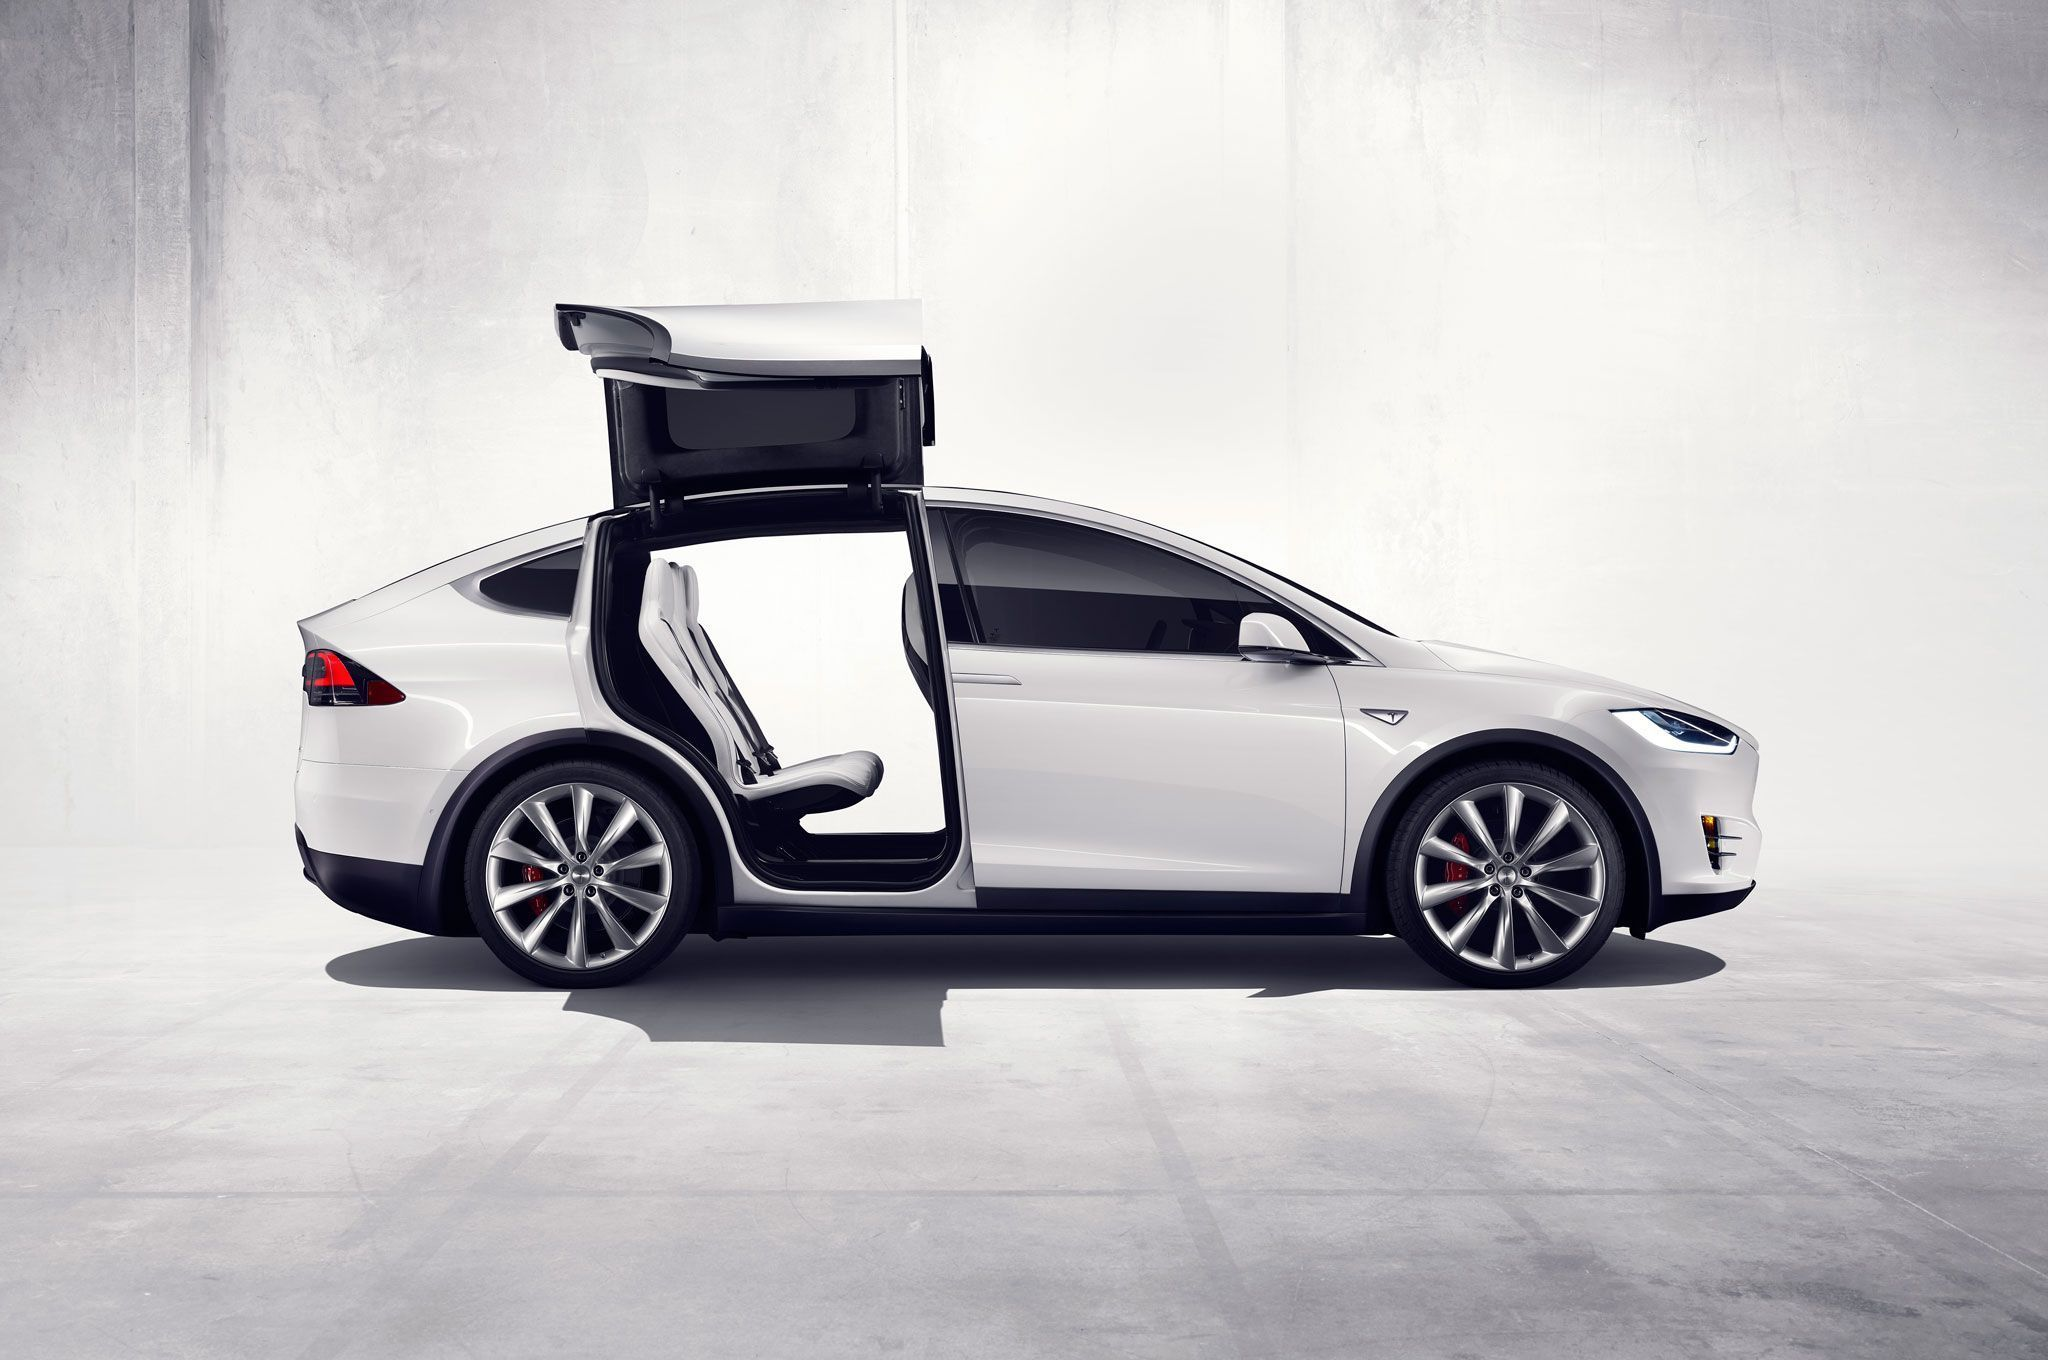 Pin By Sally Davis On Ride Pinterest Tesla Model X Cars And Model